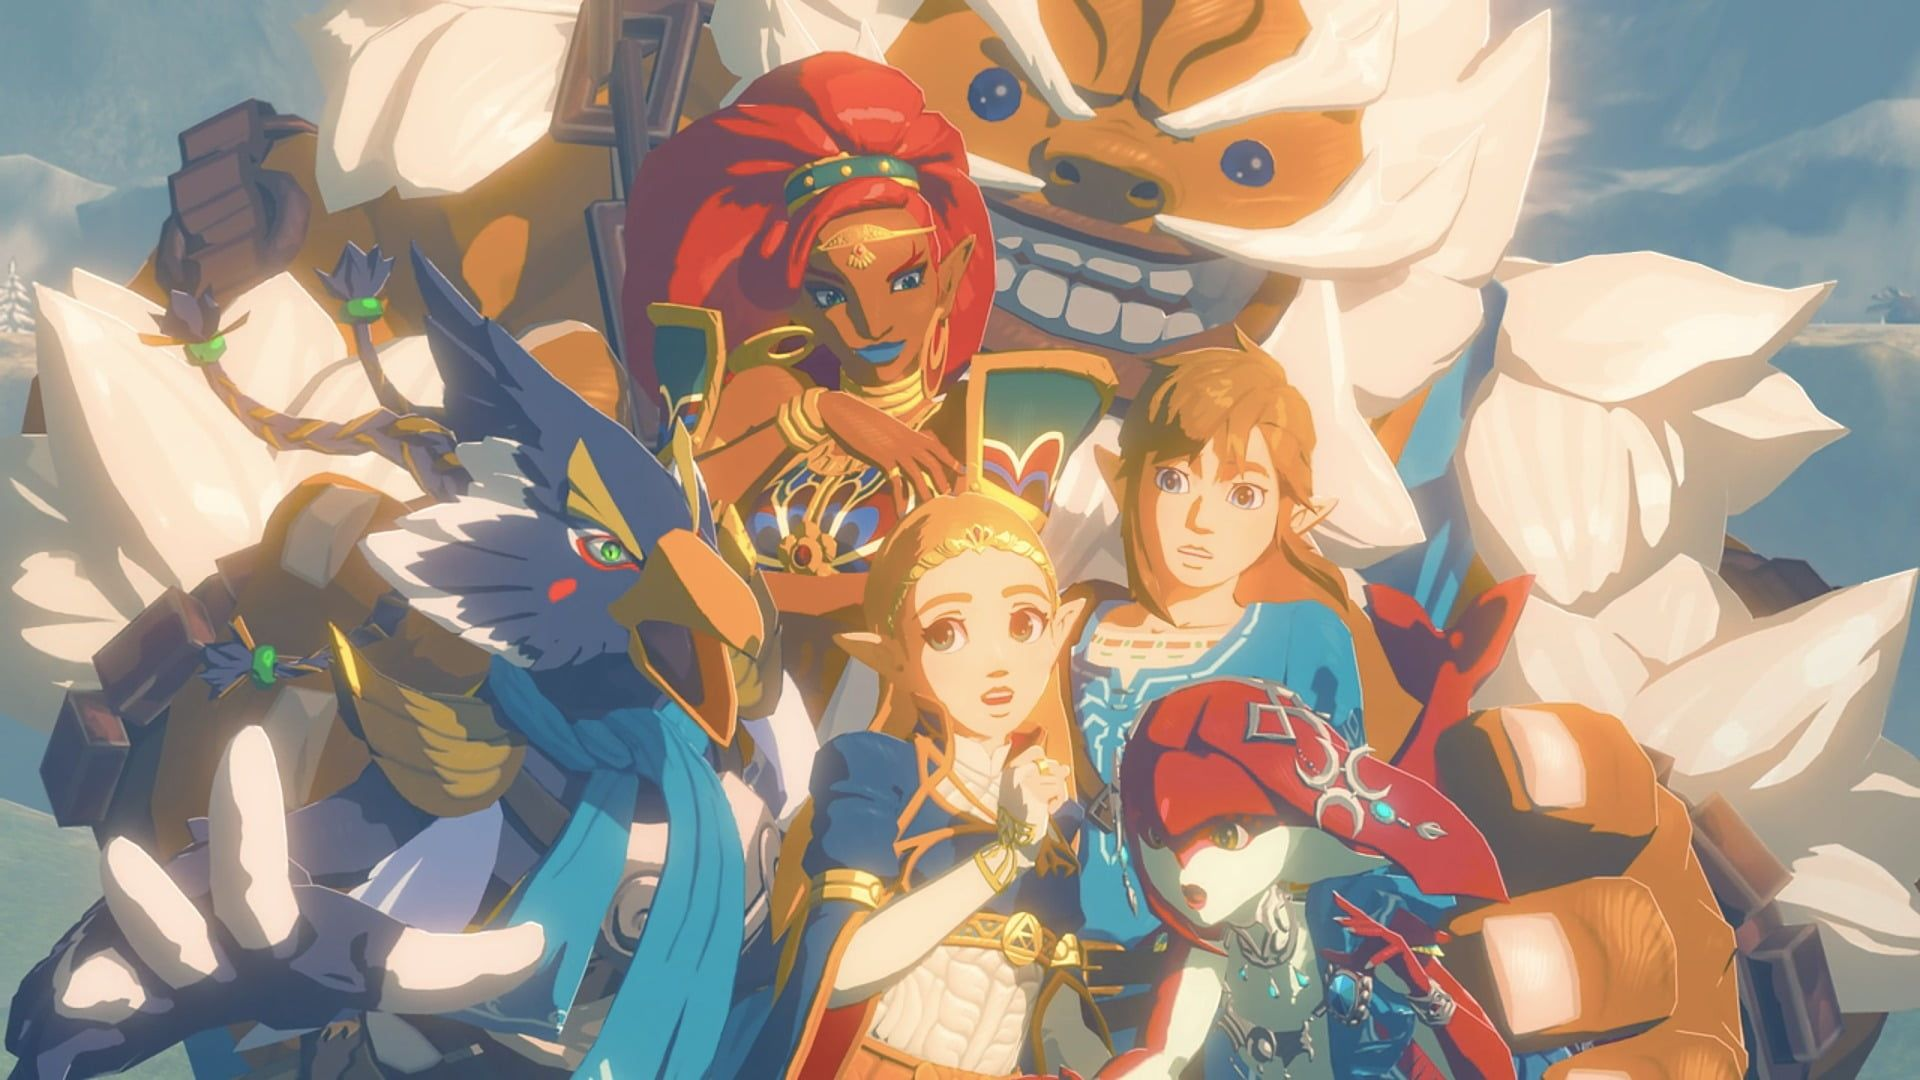 Anime Character Wallpaper Botw The Legend Of Zelda Breath Of The Wild The Champions Ballad Mipha The L Legend Of Zelda Character Wallpaper Anime Characters